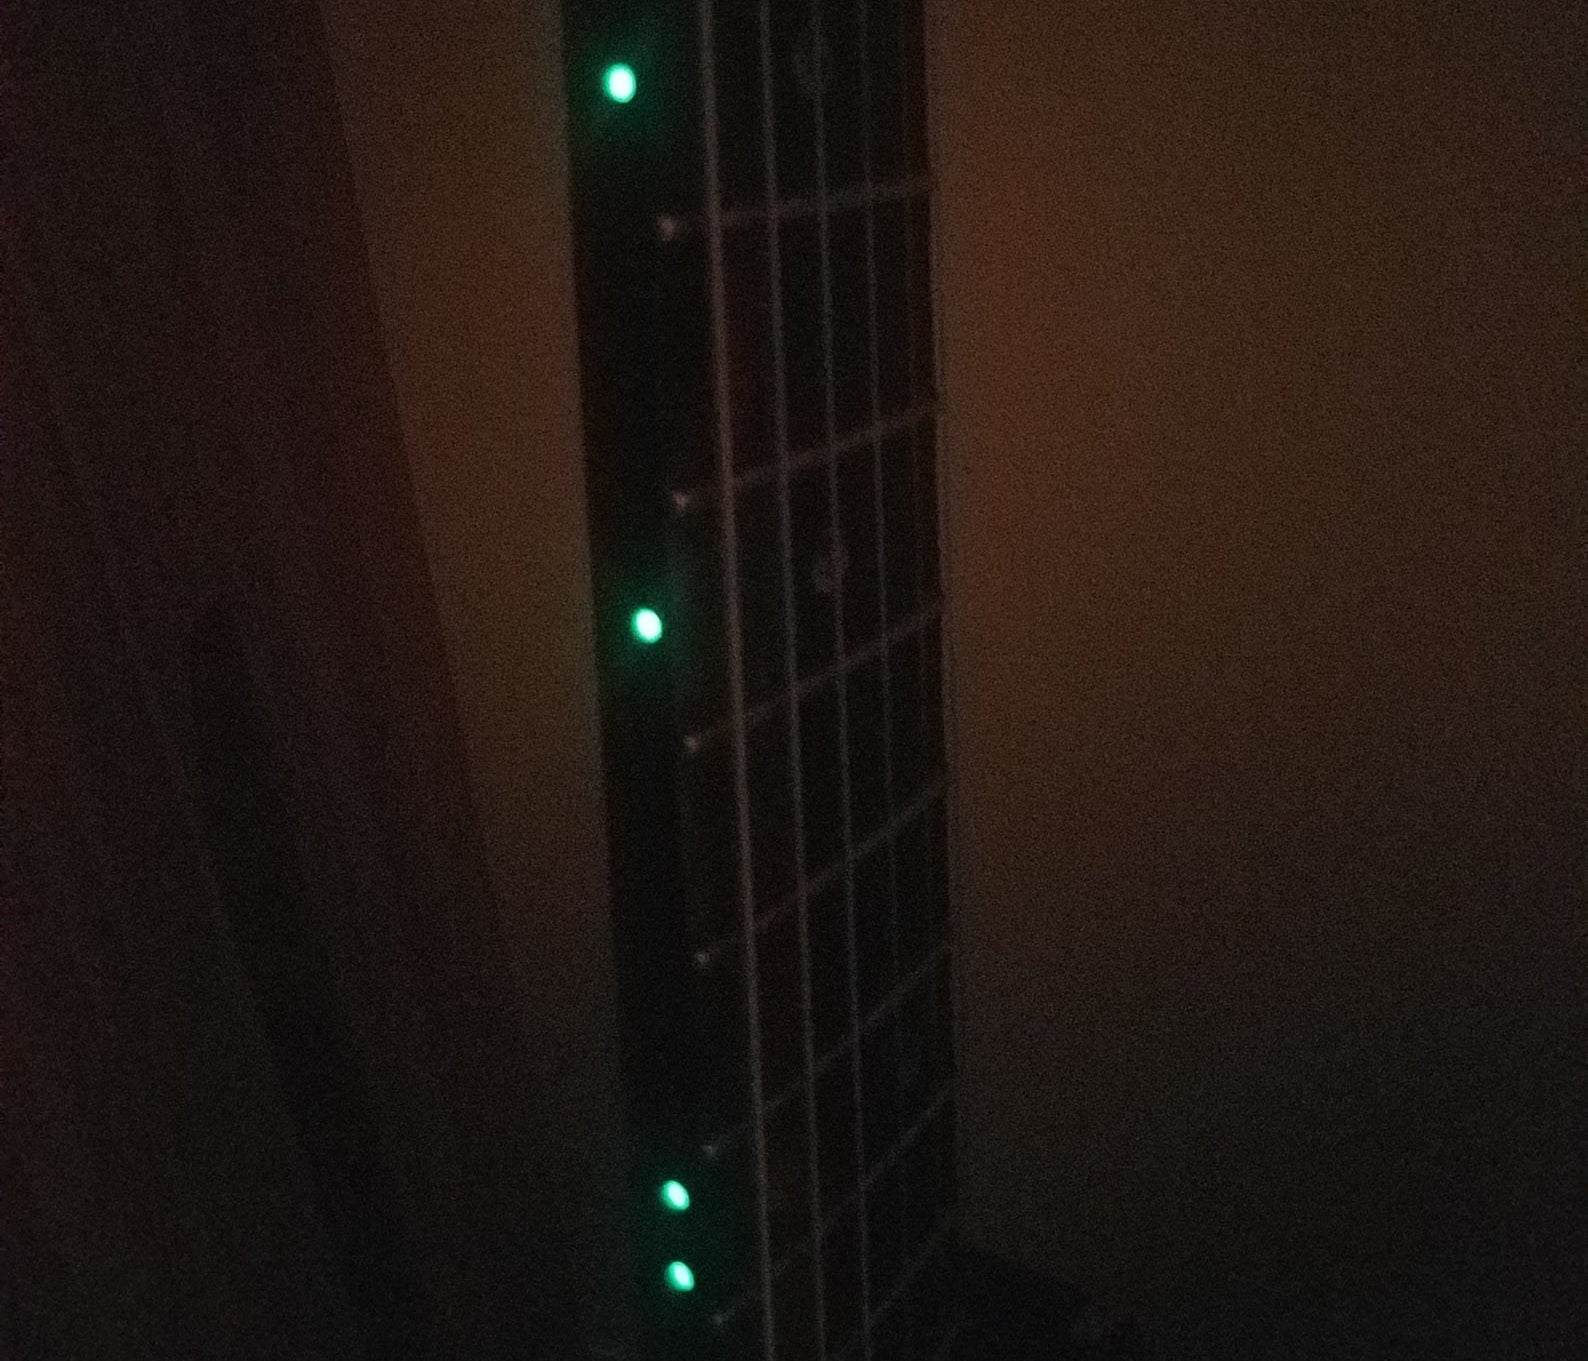 the fret markers glowing in the dark on a guitar neck